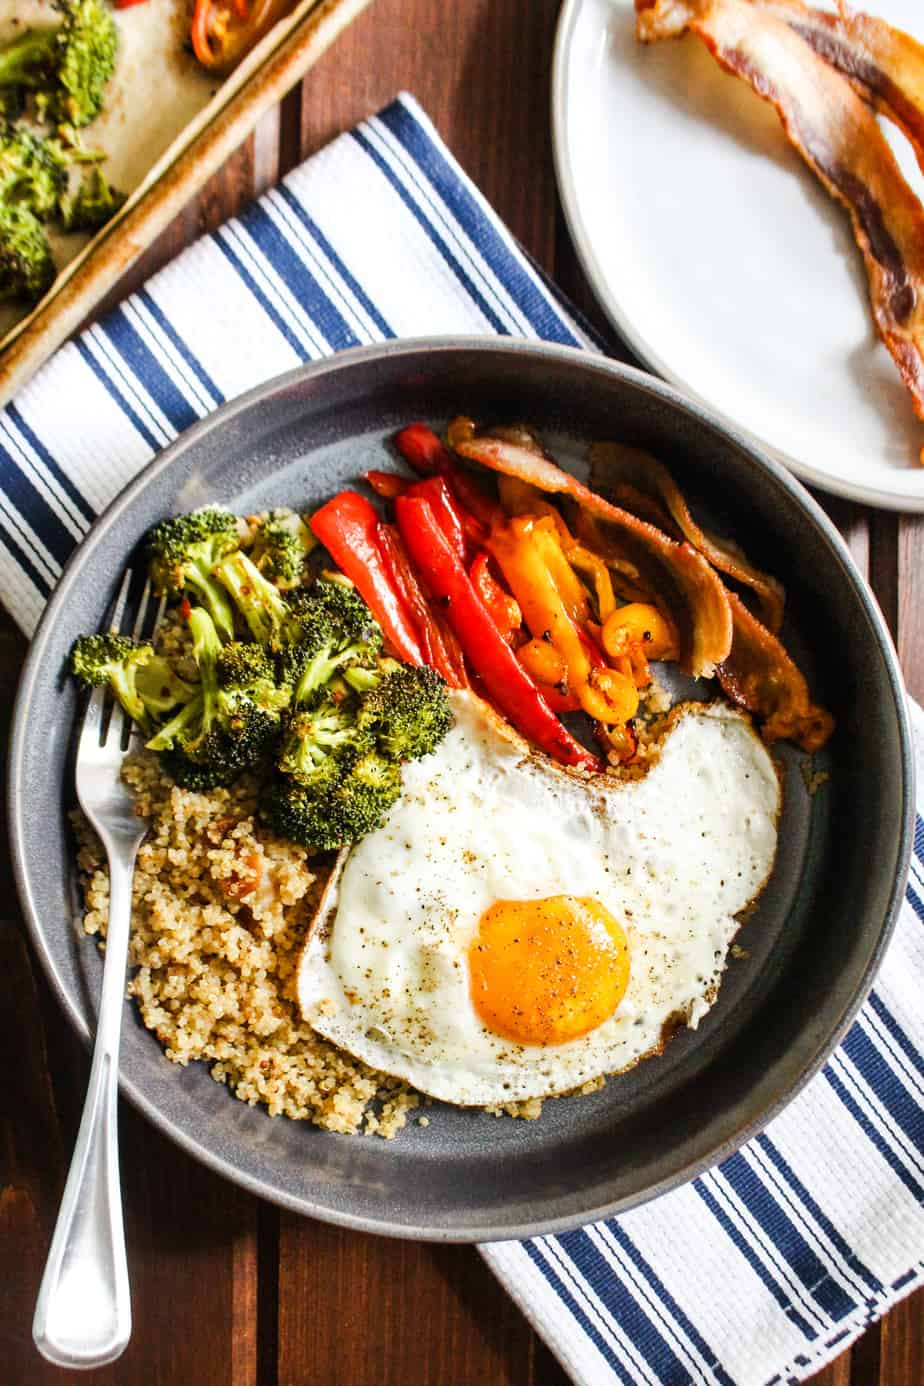 Bowl of quinoa, roasted broccoli, roasted bell peppers, and a fried egg.